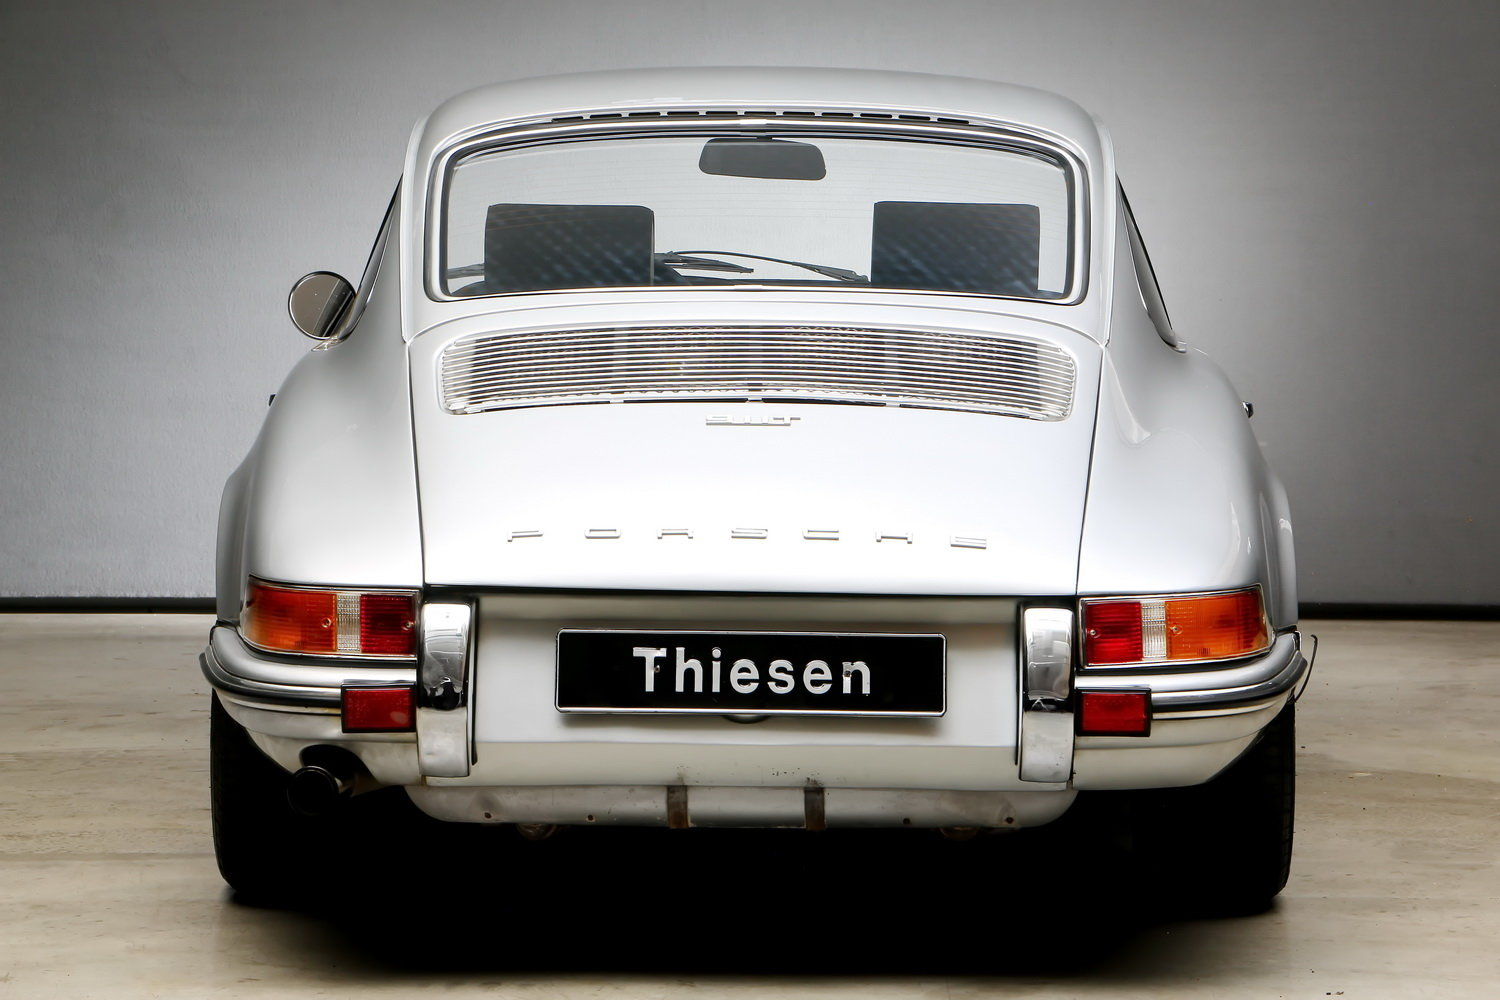 1970 911T 2.2 Ltr. Coup - Individualumbau - For Sale (picture 12 of 12)